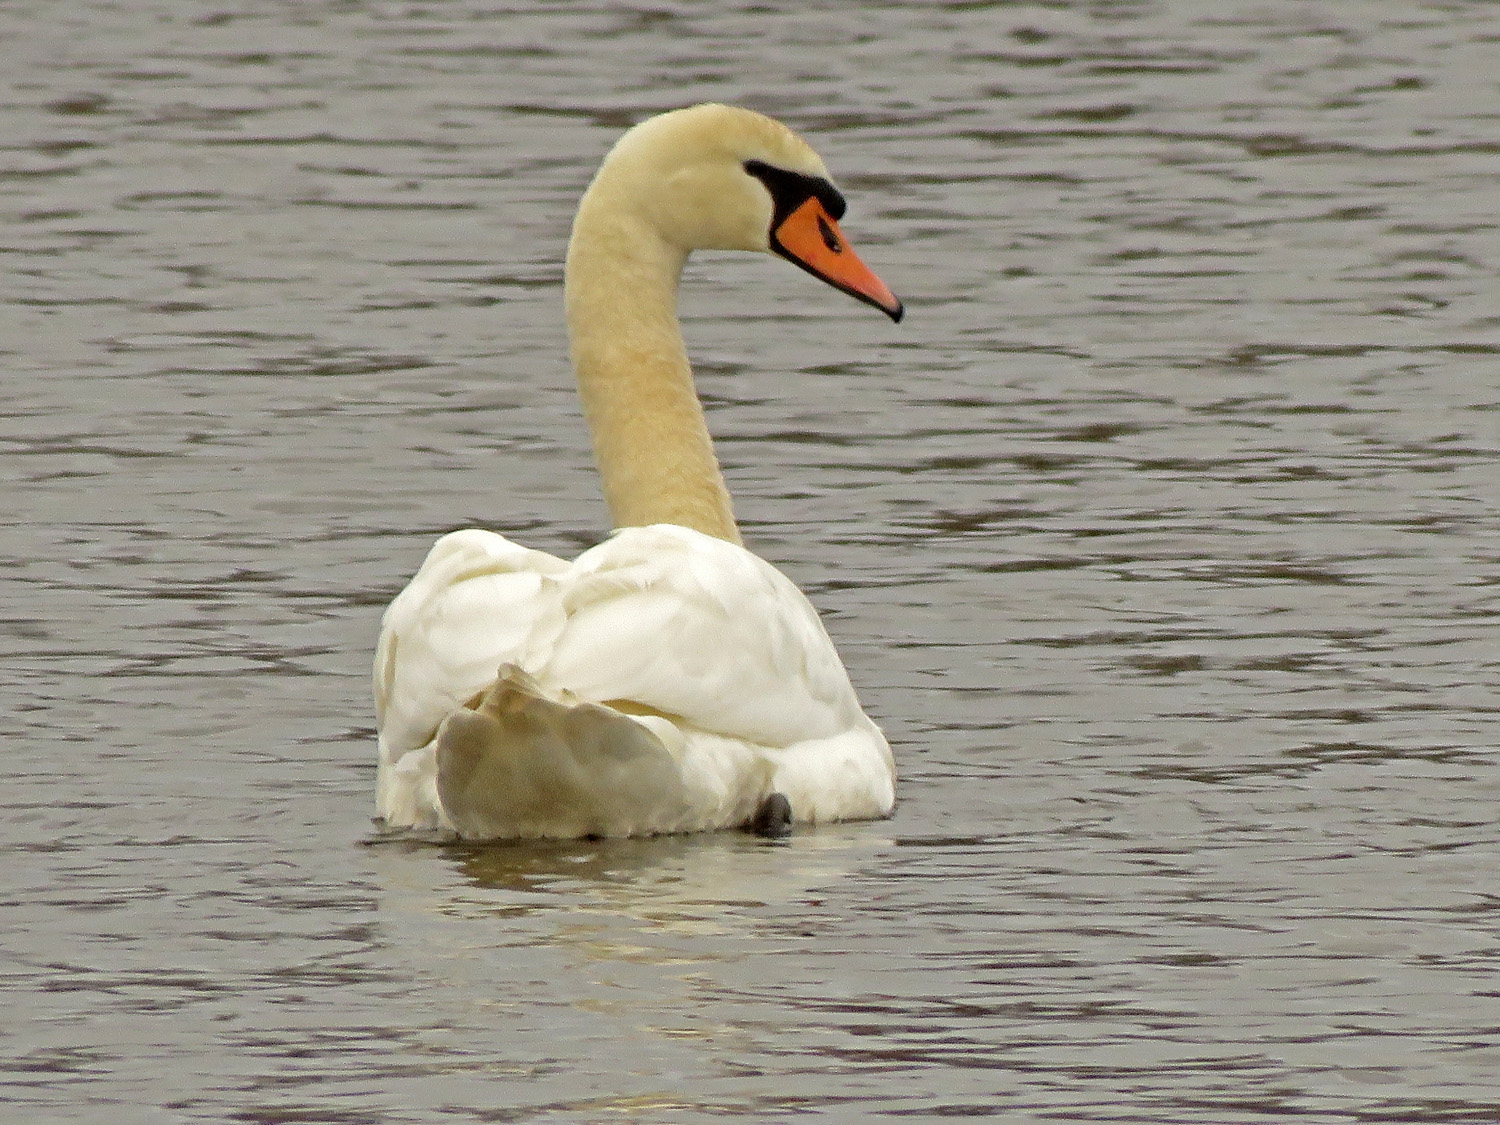 Mute swan, Cunningham Pond, Mt. Loretto, Staten Island, April 2, 2019